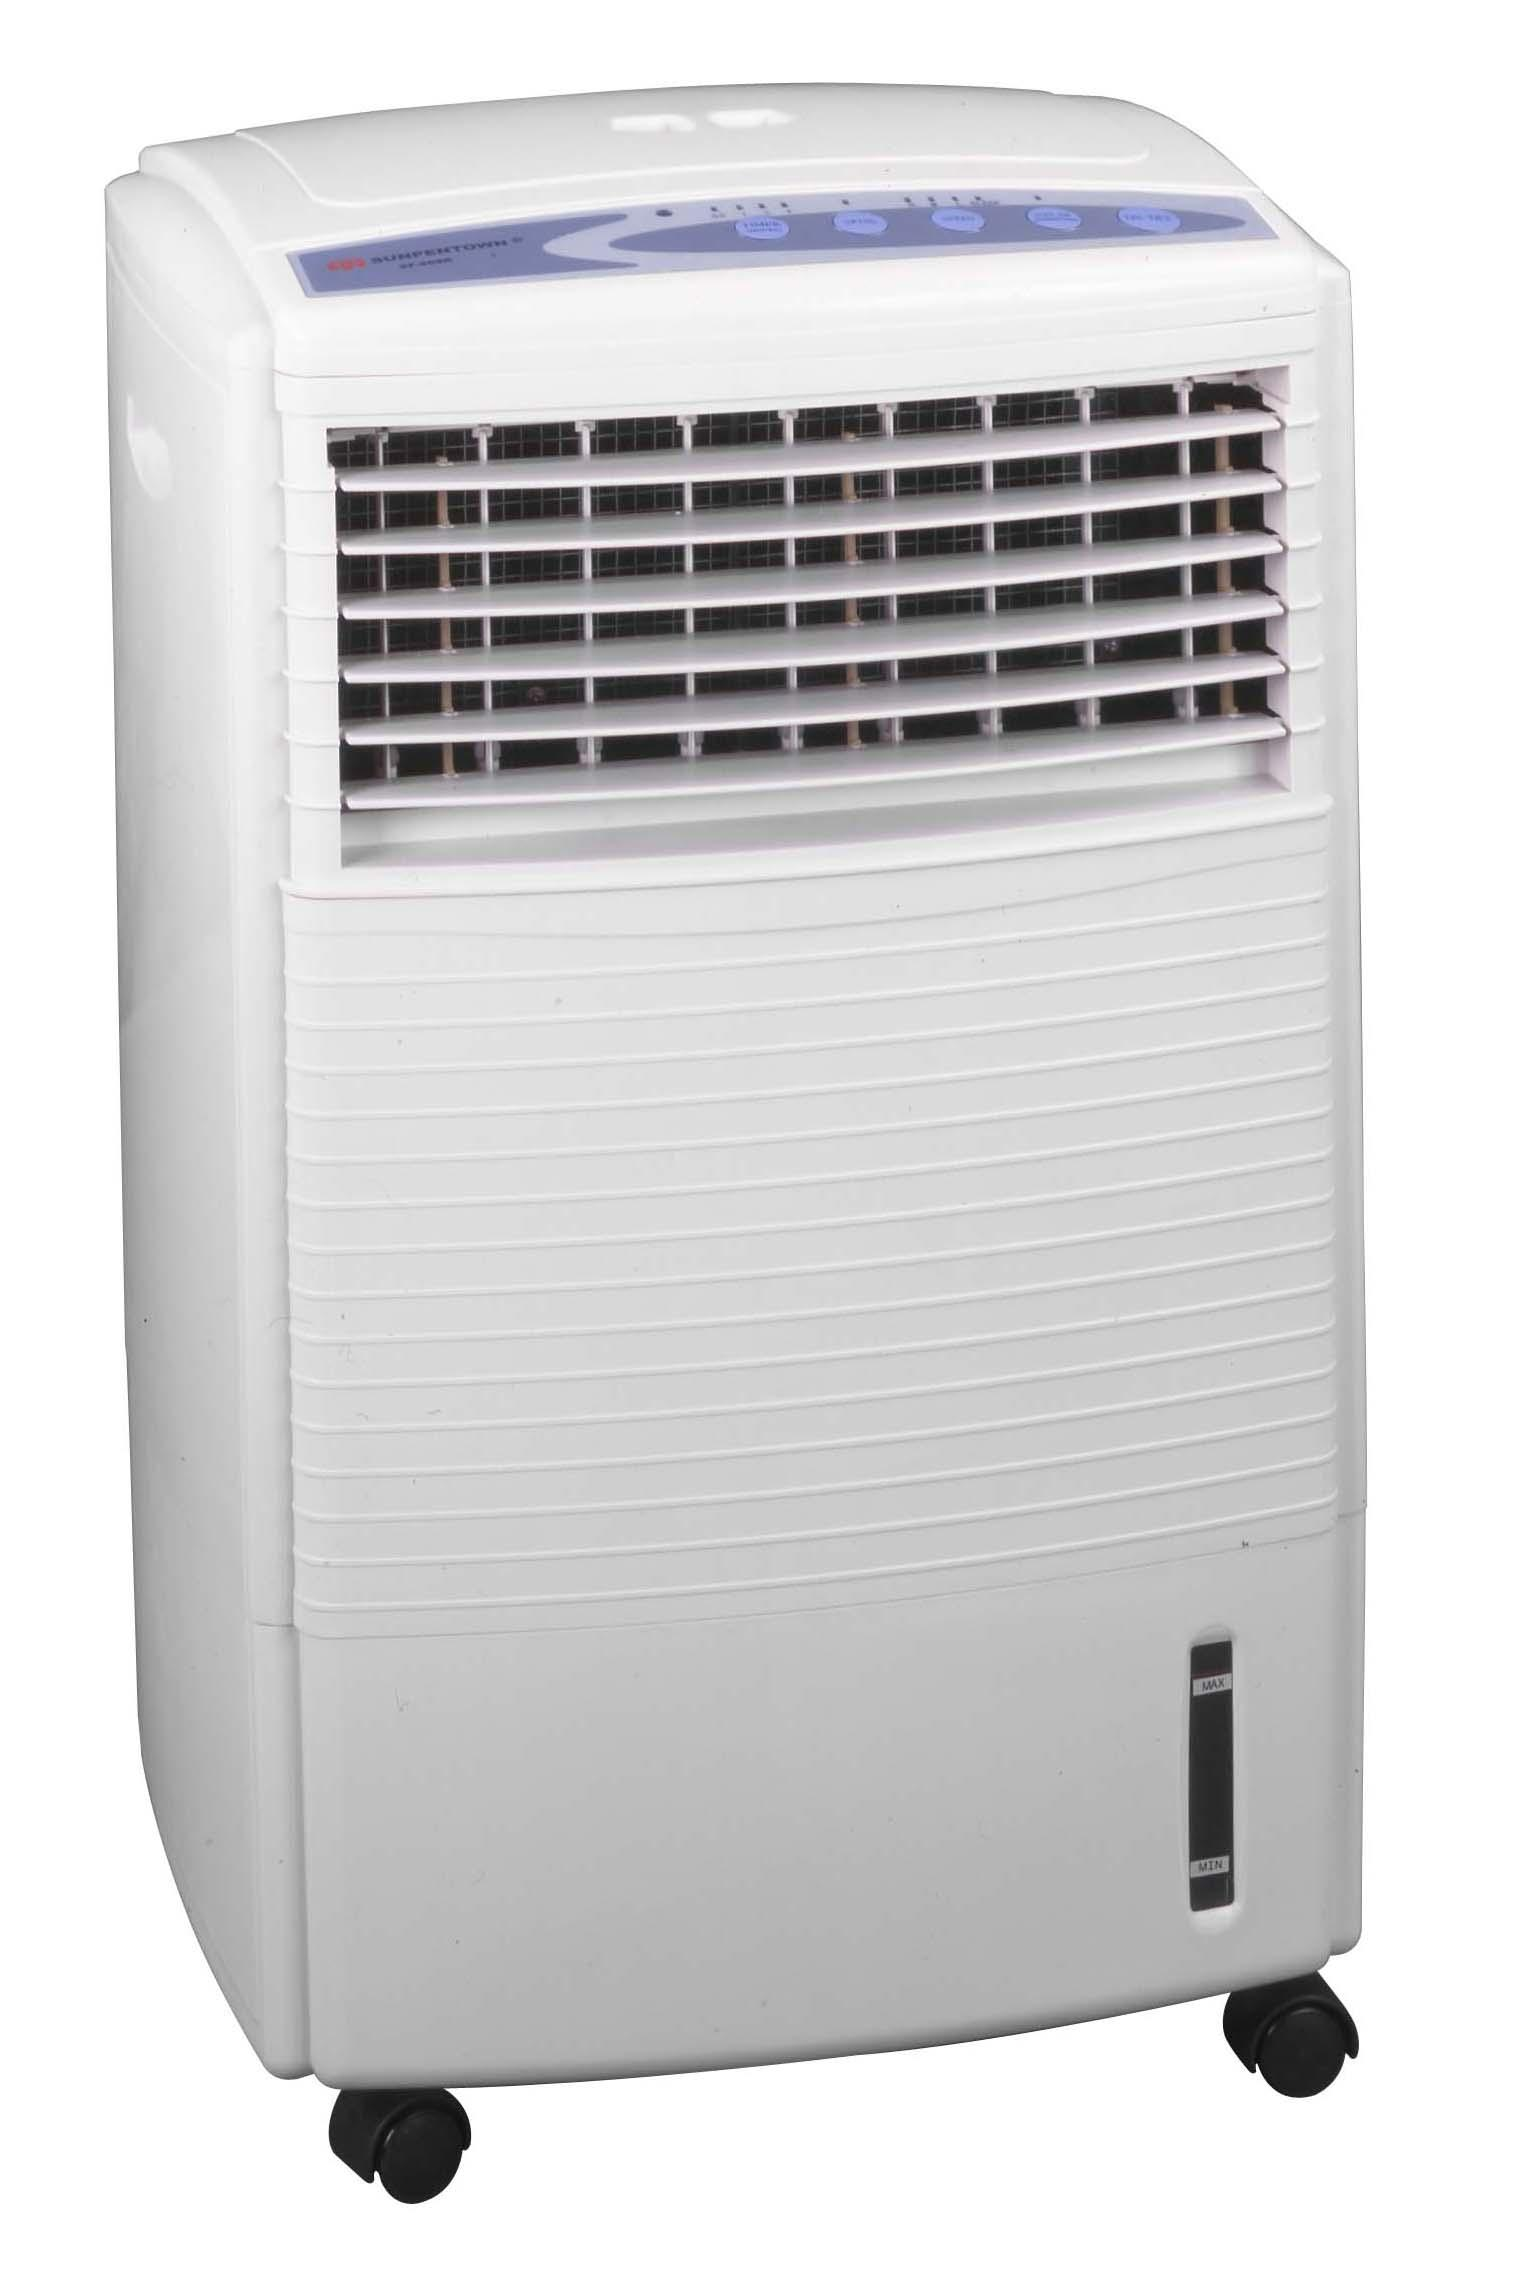 Best Fan To Cool A Room Amazon Spt Sf 608r Portable Evaporative Air Cooler